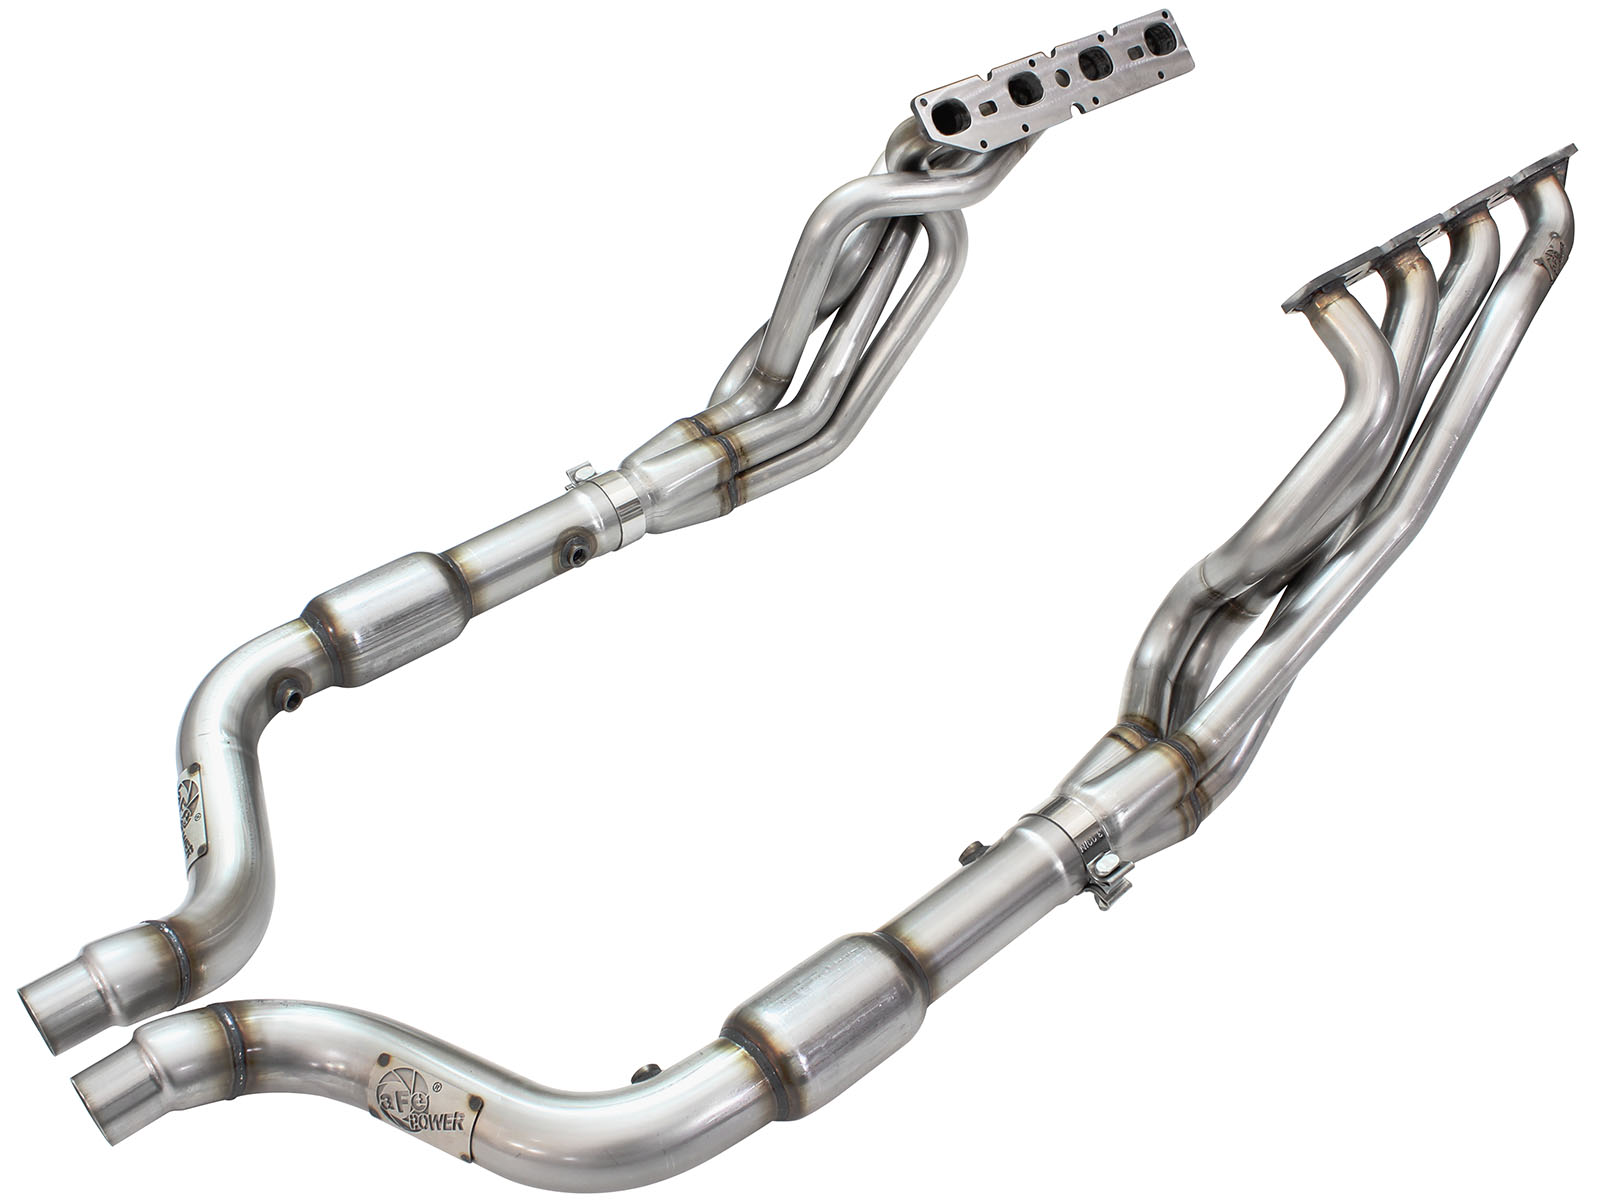 Dodge challenger and charger headers 5.7L 1